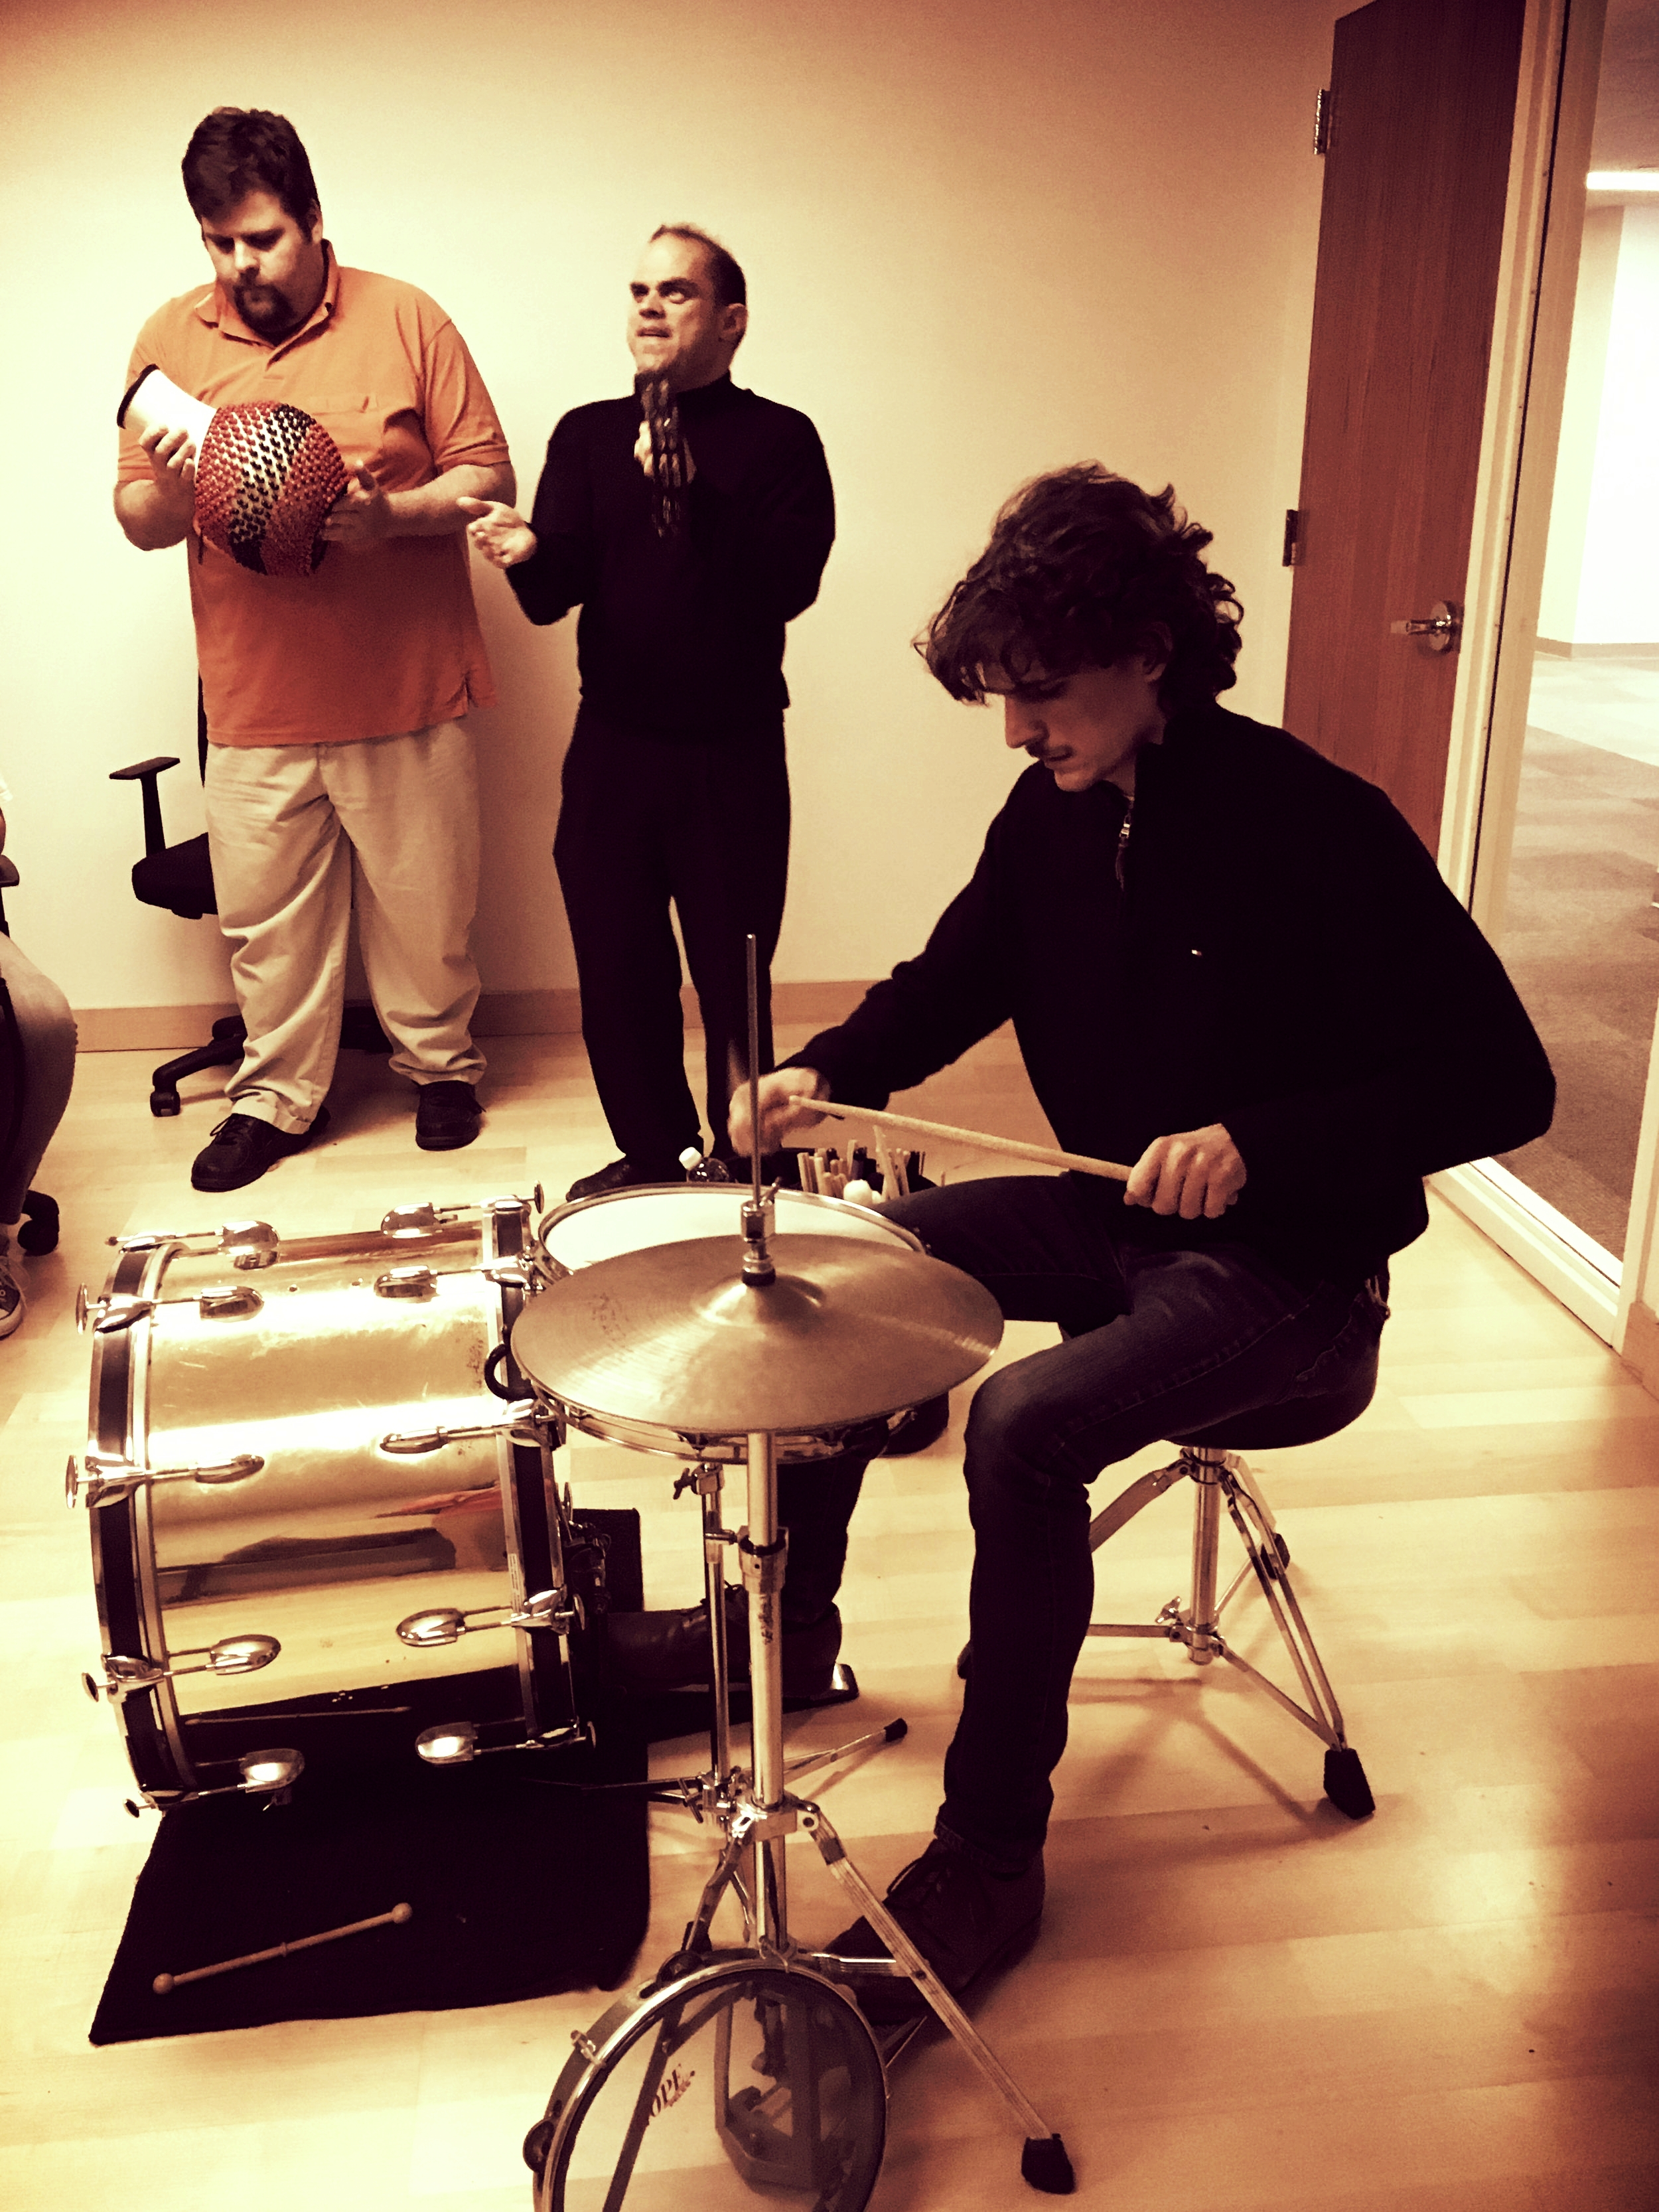 Percussion     Exploring percussion instruments and rhythms from around the world.   Basic rhythms and grooves are demonstrated and groups are formed that build the beats from their foundation to improvisation. African, Latin American and Middle Eastern instruments are provided. Participants learn how to go from hand clapping a rhythm to actually performing in an ensemble setting.   No previous background on any instrument is needed.